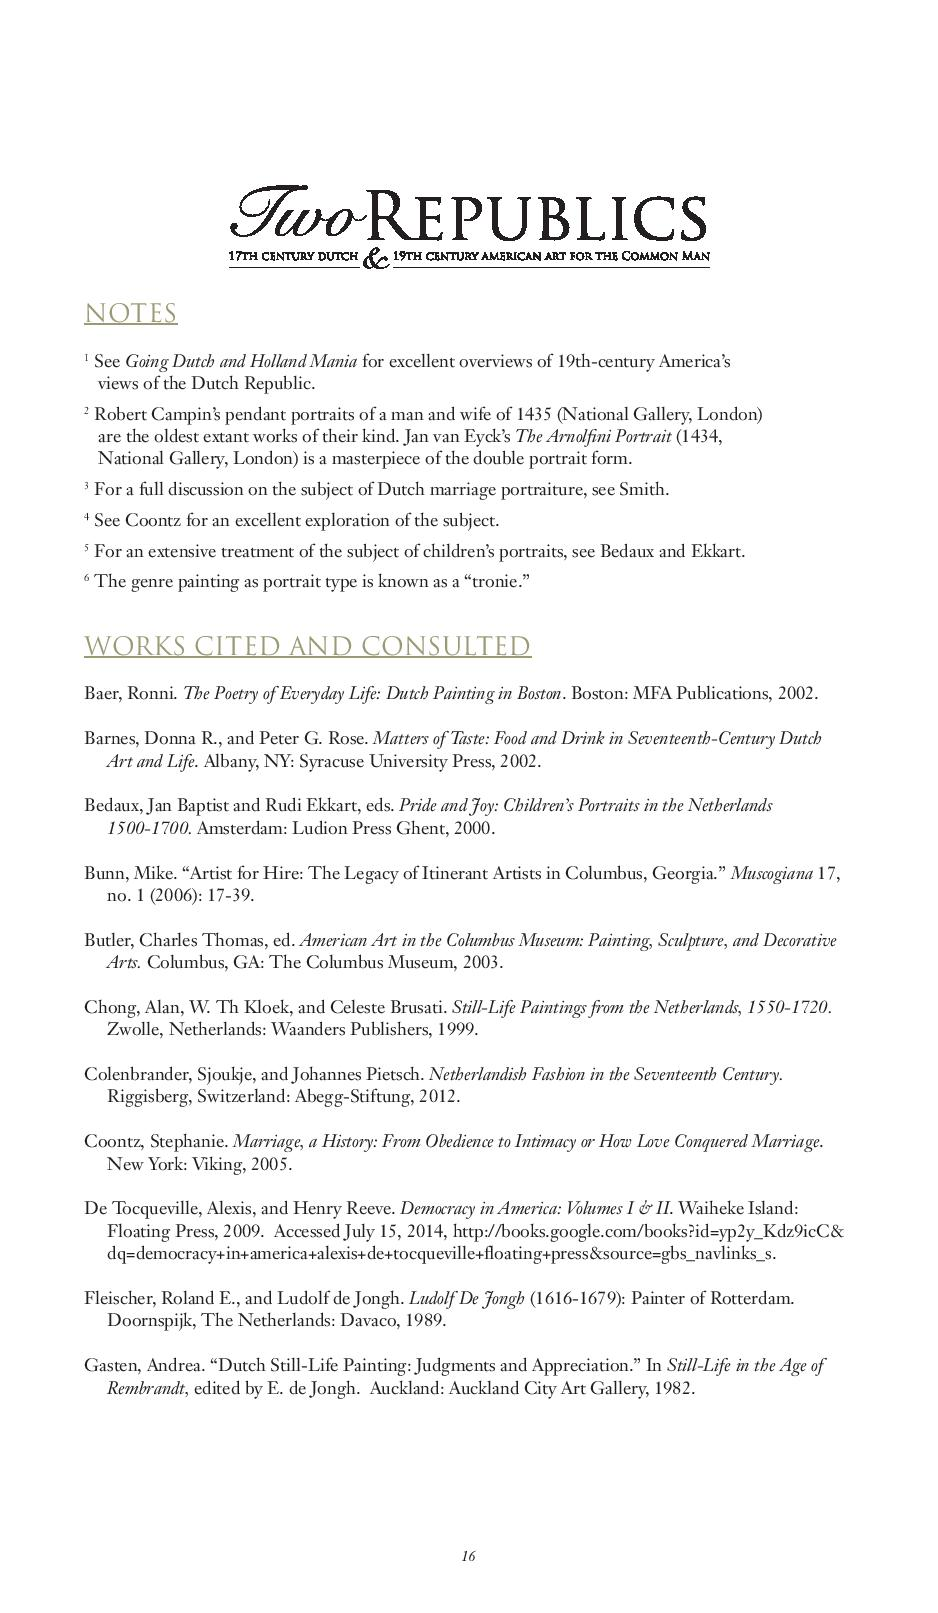 Two Republics Gallery Guide 3-page-018.jpg